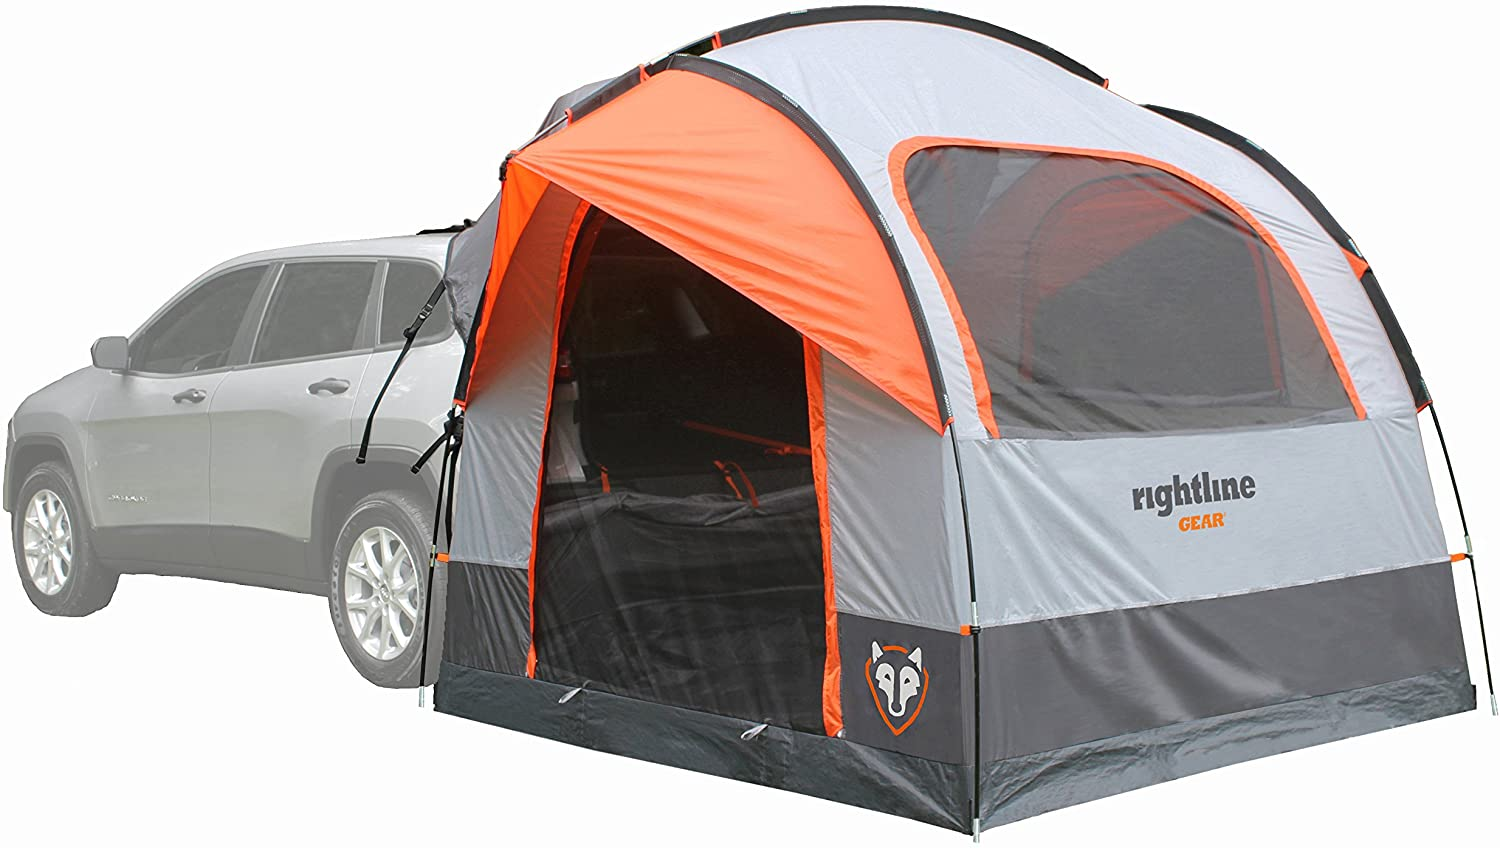 Tents That Attach to Suvs